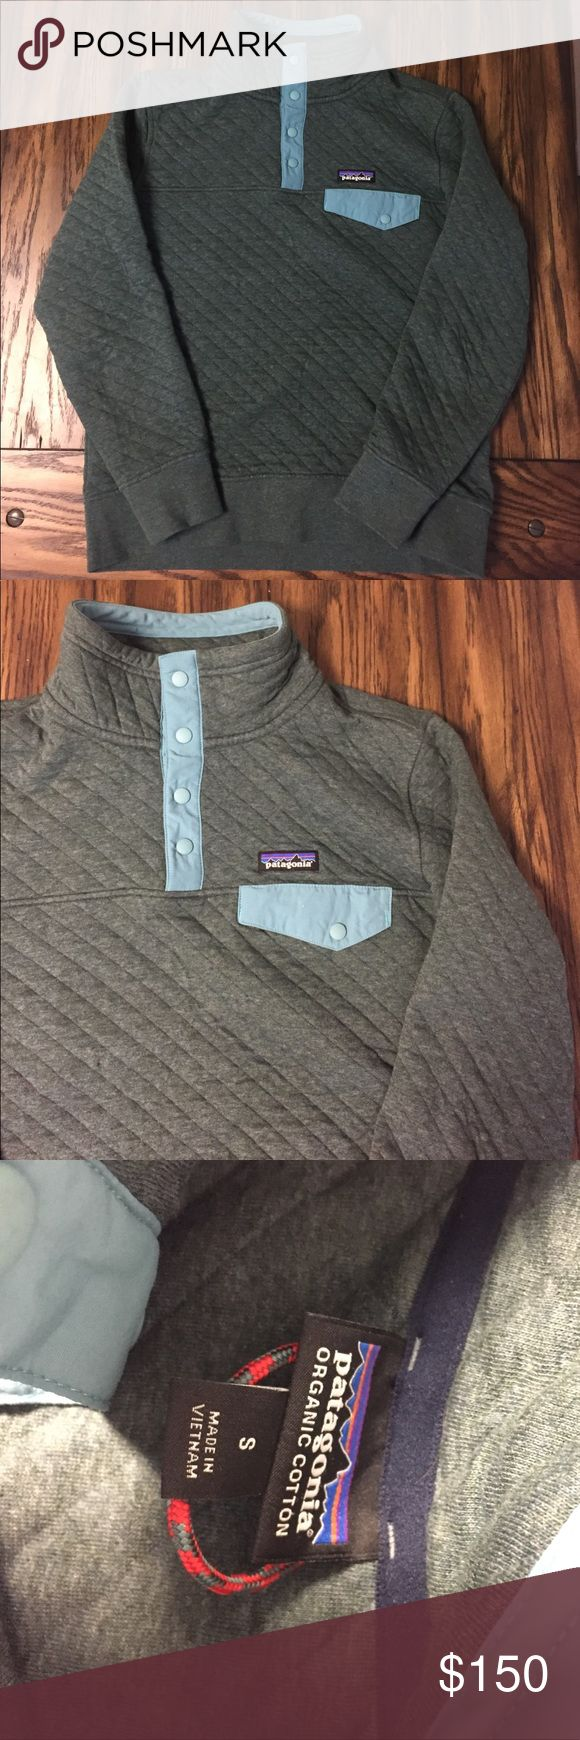 """Patagonia Women's Quilted Pullover Women's size small, could easily fit a medium or large (snug). Runs big for a small, super cute and in a beautiful """"Nouveau Green"""" you can't find anymore. Only worn once. Looks brand new! :) Patagonia Sweaters"""